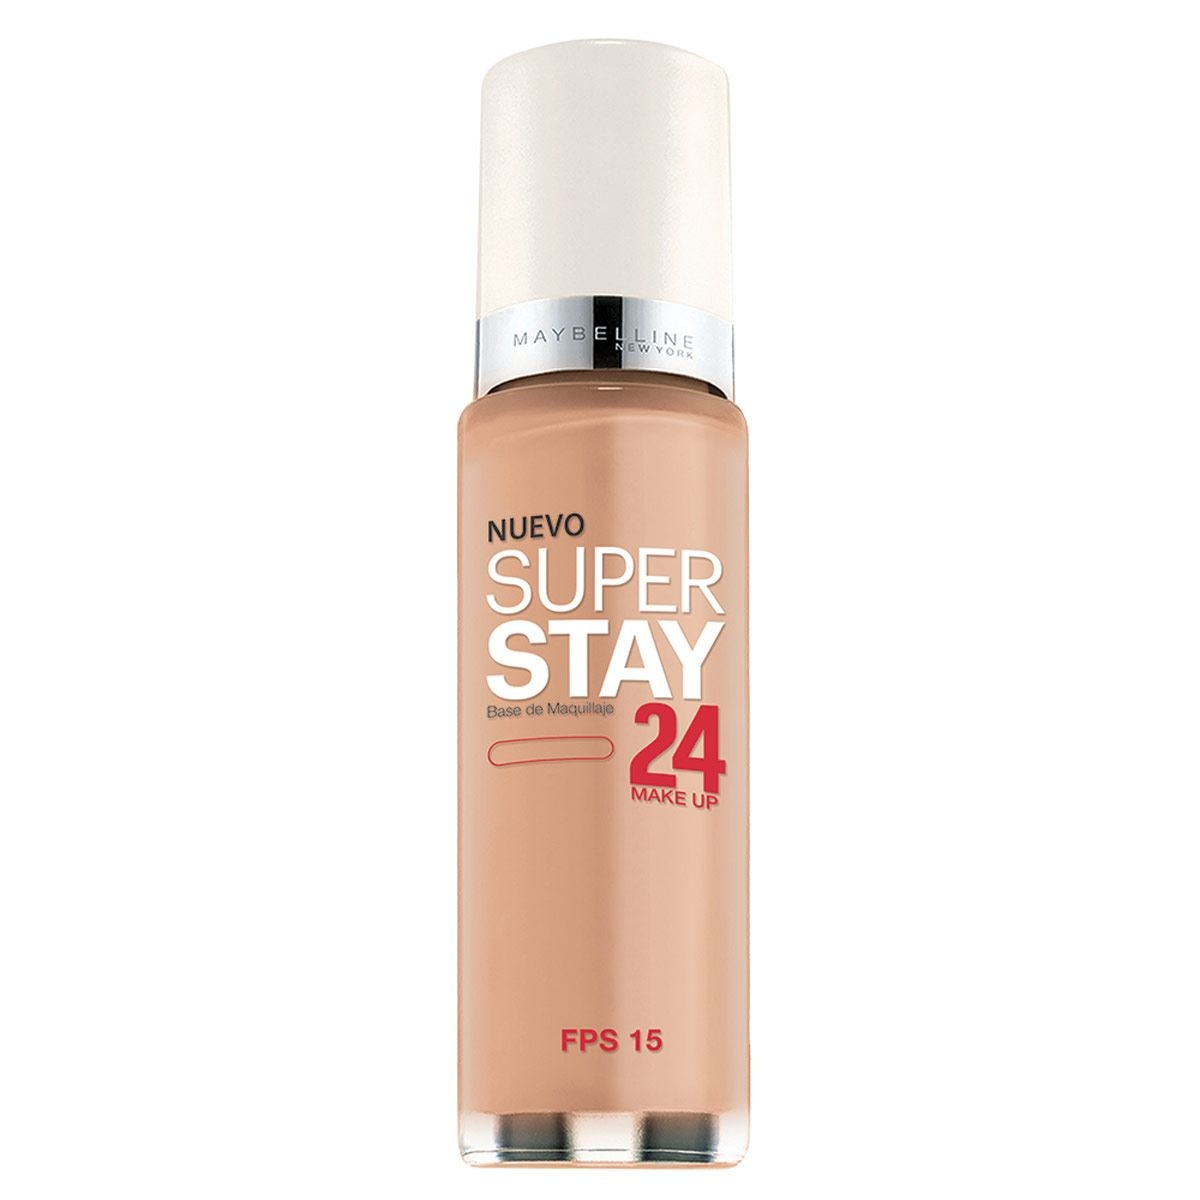 Base de Maquillaje Superstay 24 Maybelline Pure Beige